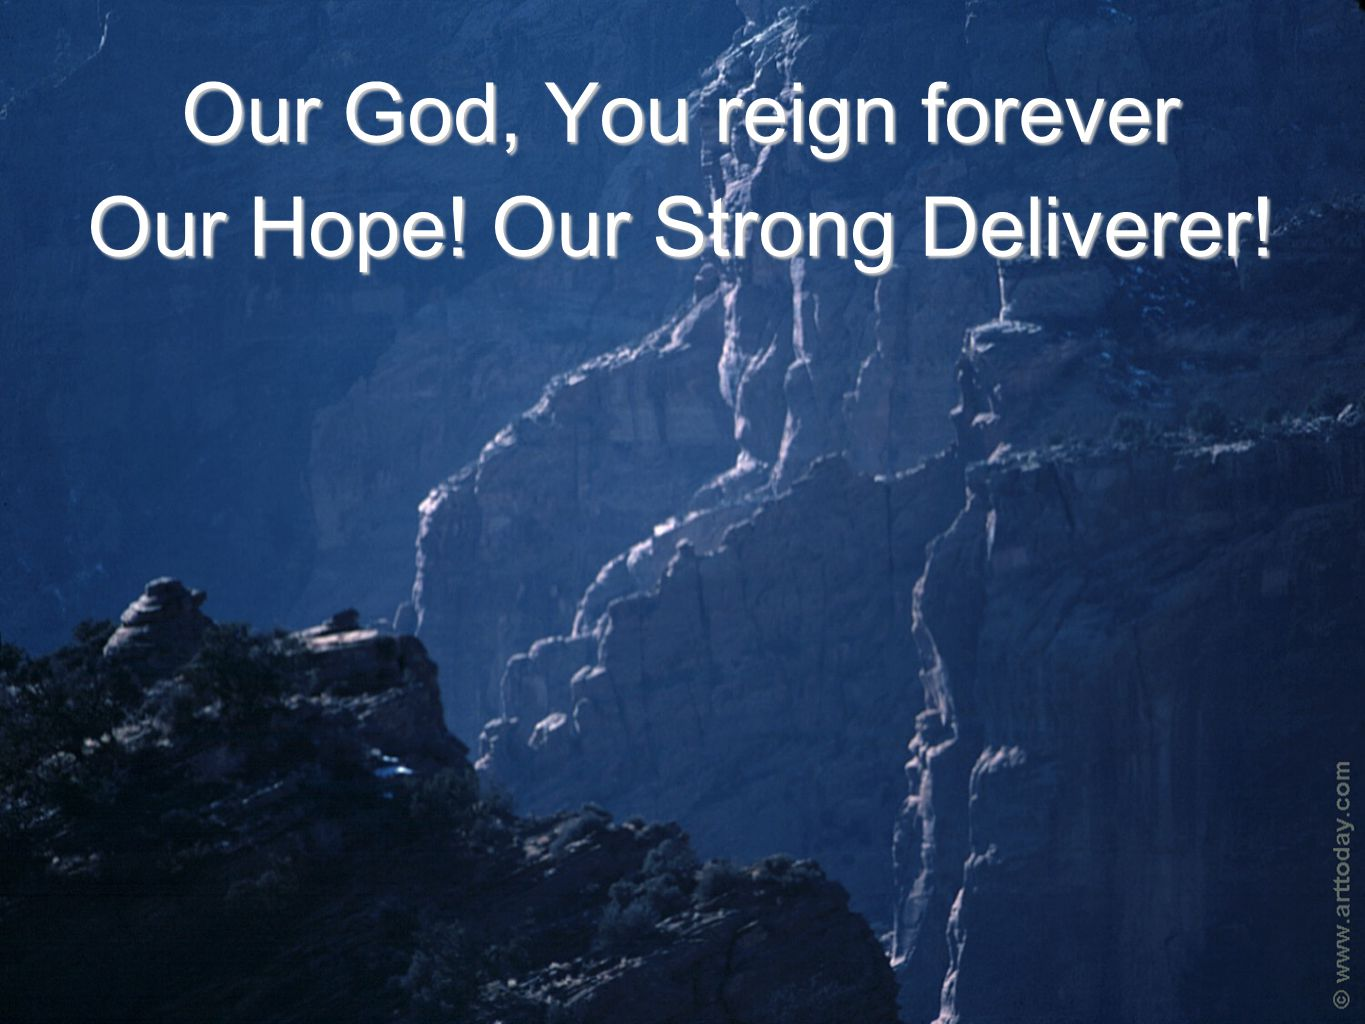 Our God, You reign forever Our Hope! Our Strong Deliverer!